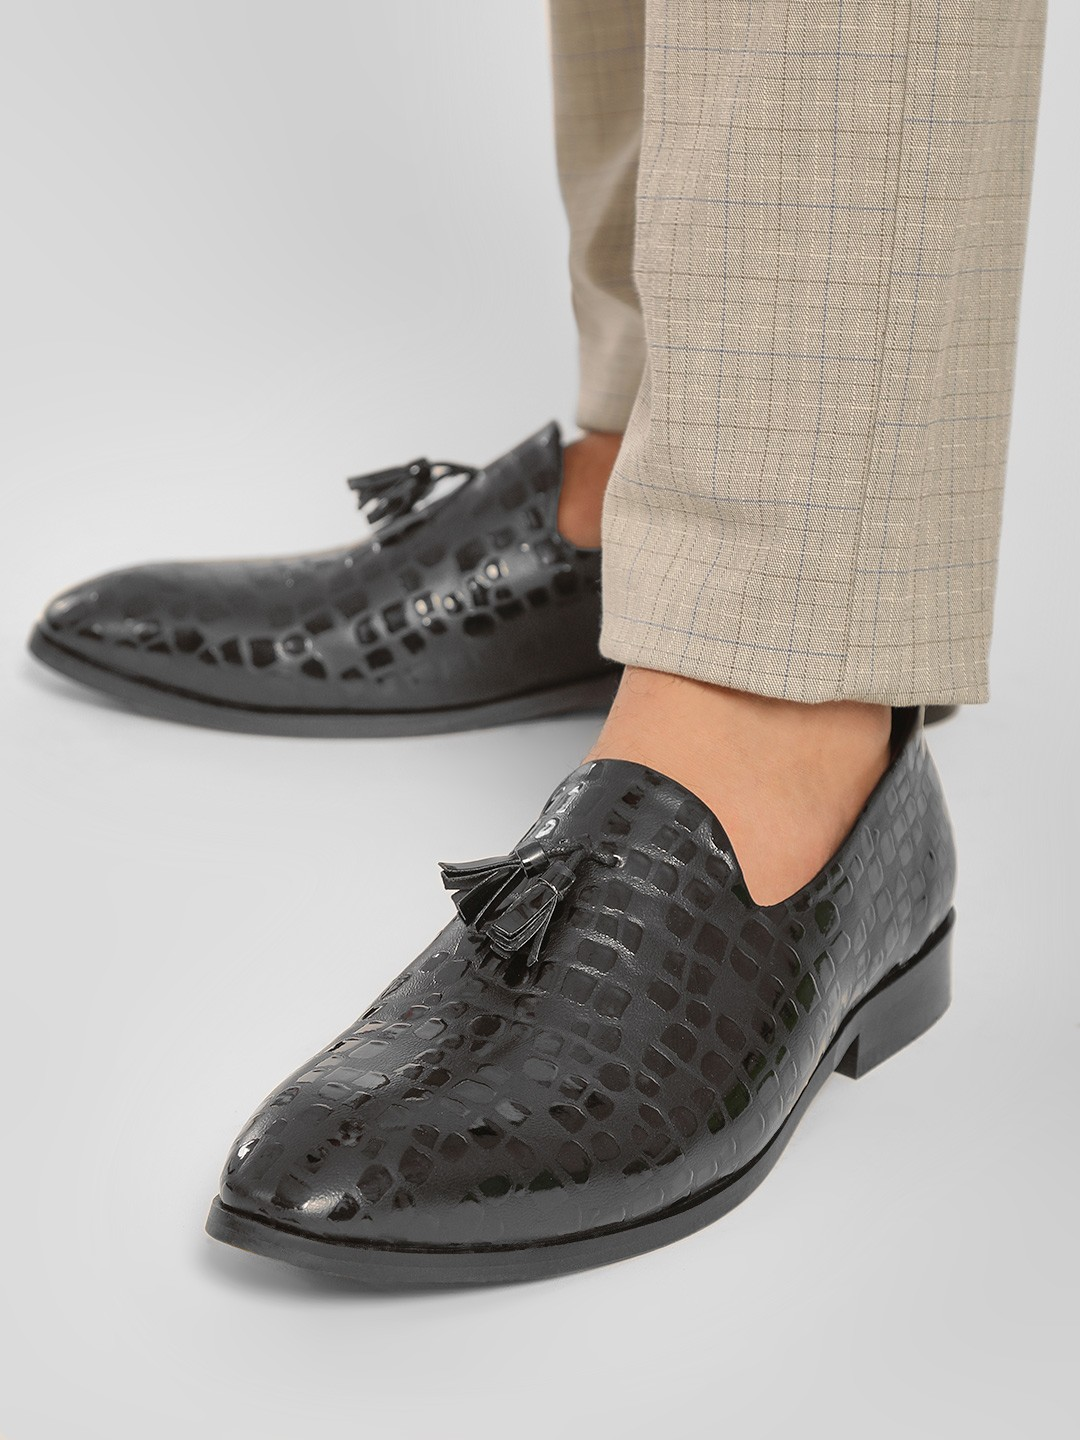 Rodolfo Darrell Black Crocskin Tasseled Loafers 1